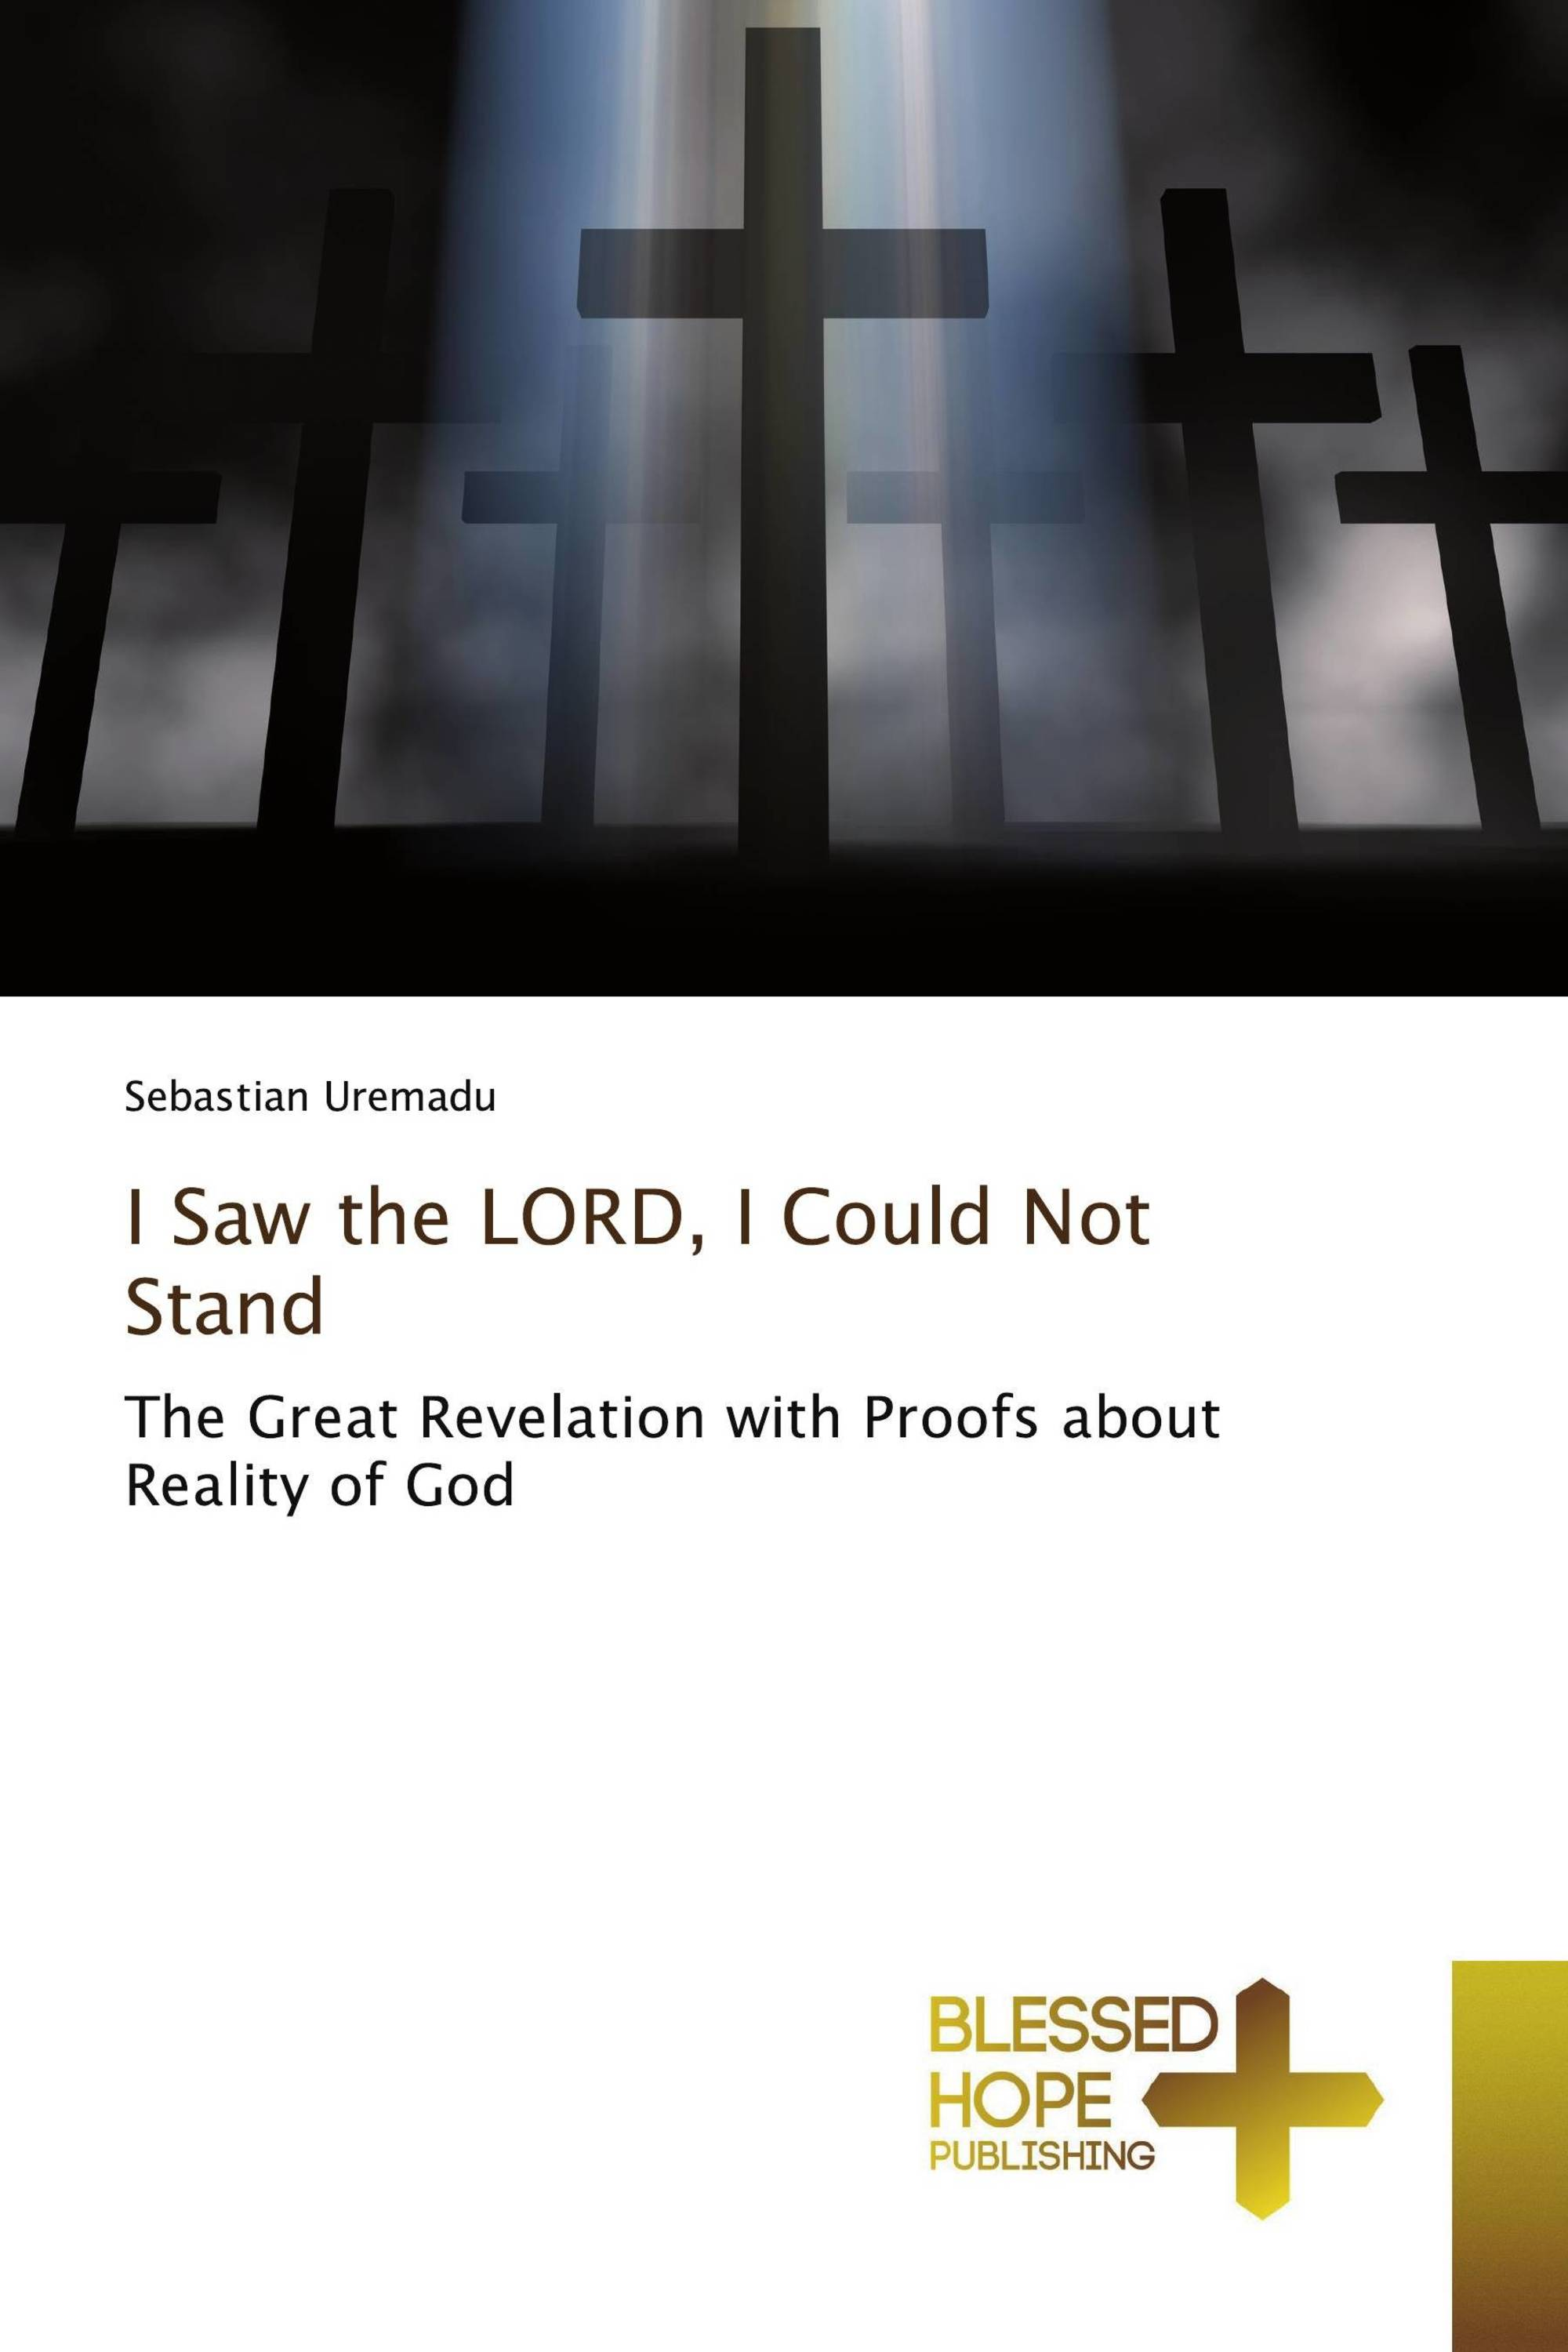 I Saw the LORD, I Could Not Stand